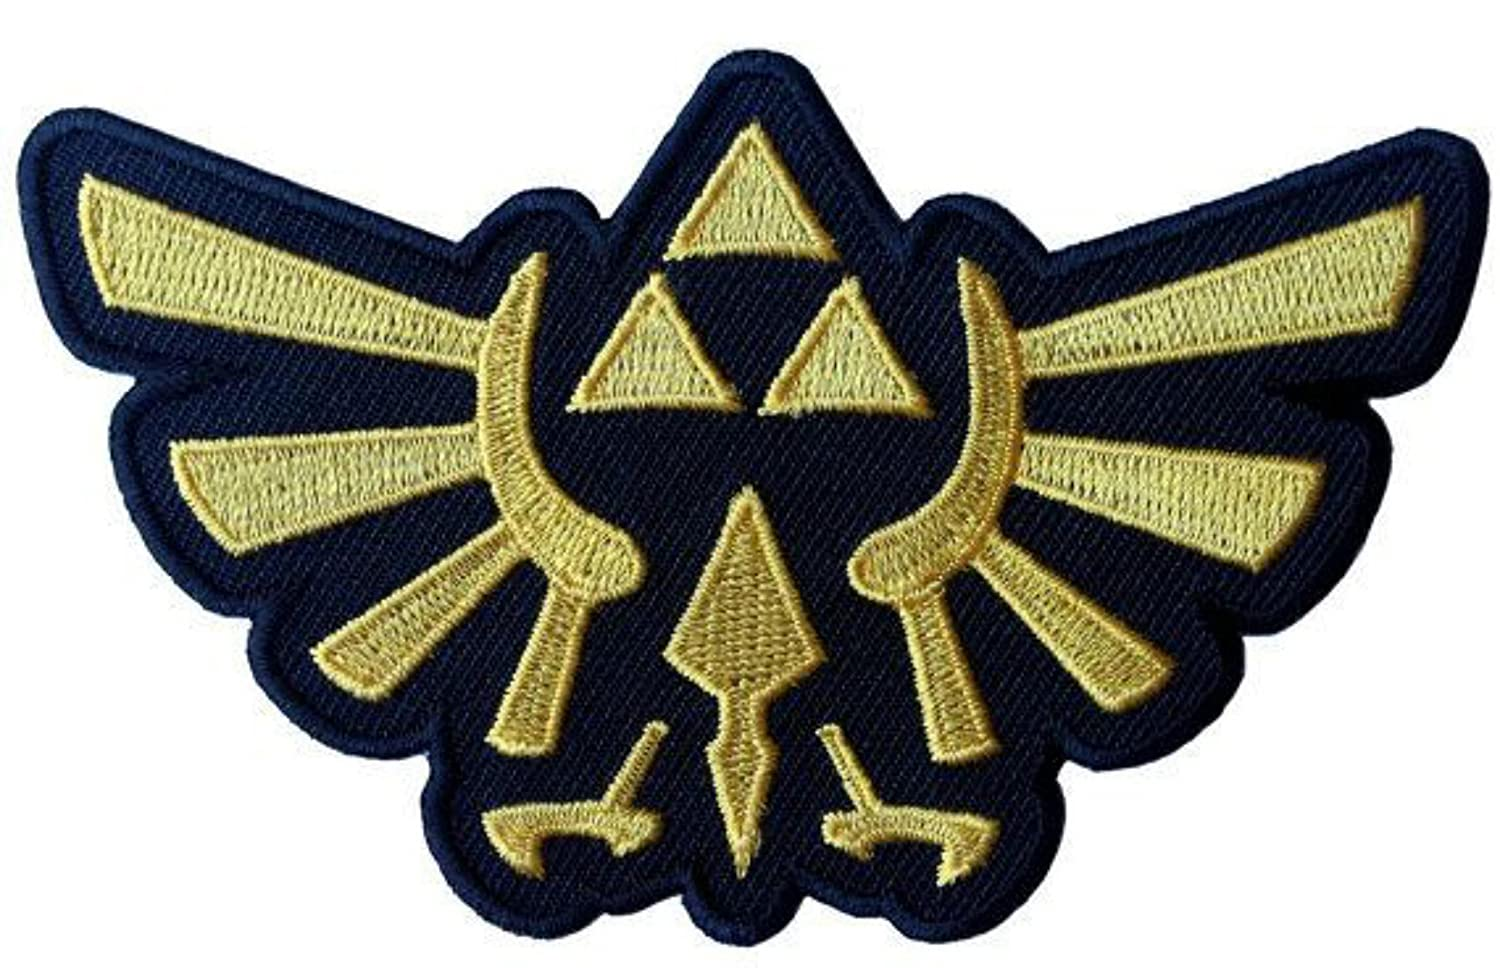 J& C Family Owned Legend of Zelda Hyrule's Royal Crest 4 Gold Logo Embroidered Sew/Iron-on Patch/Applique